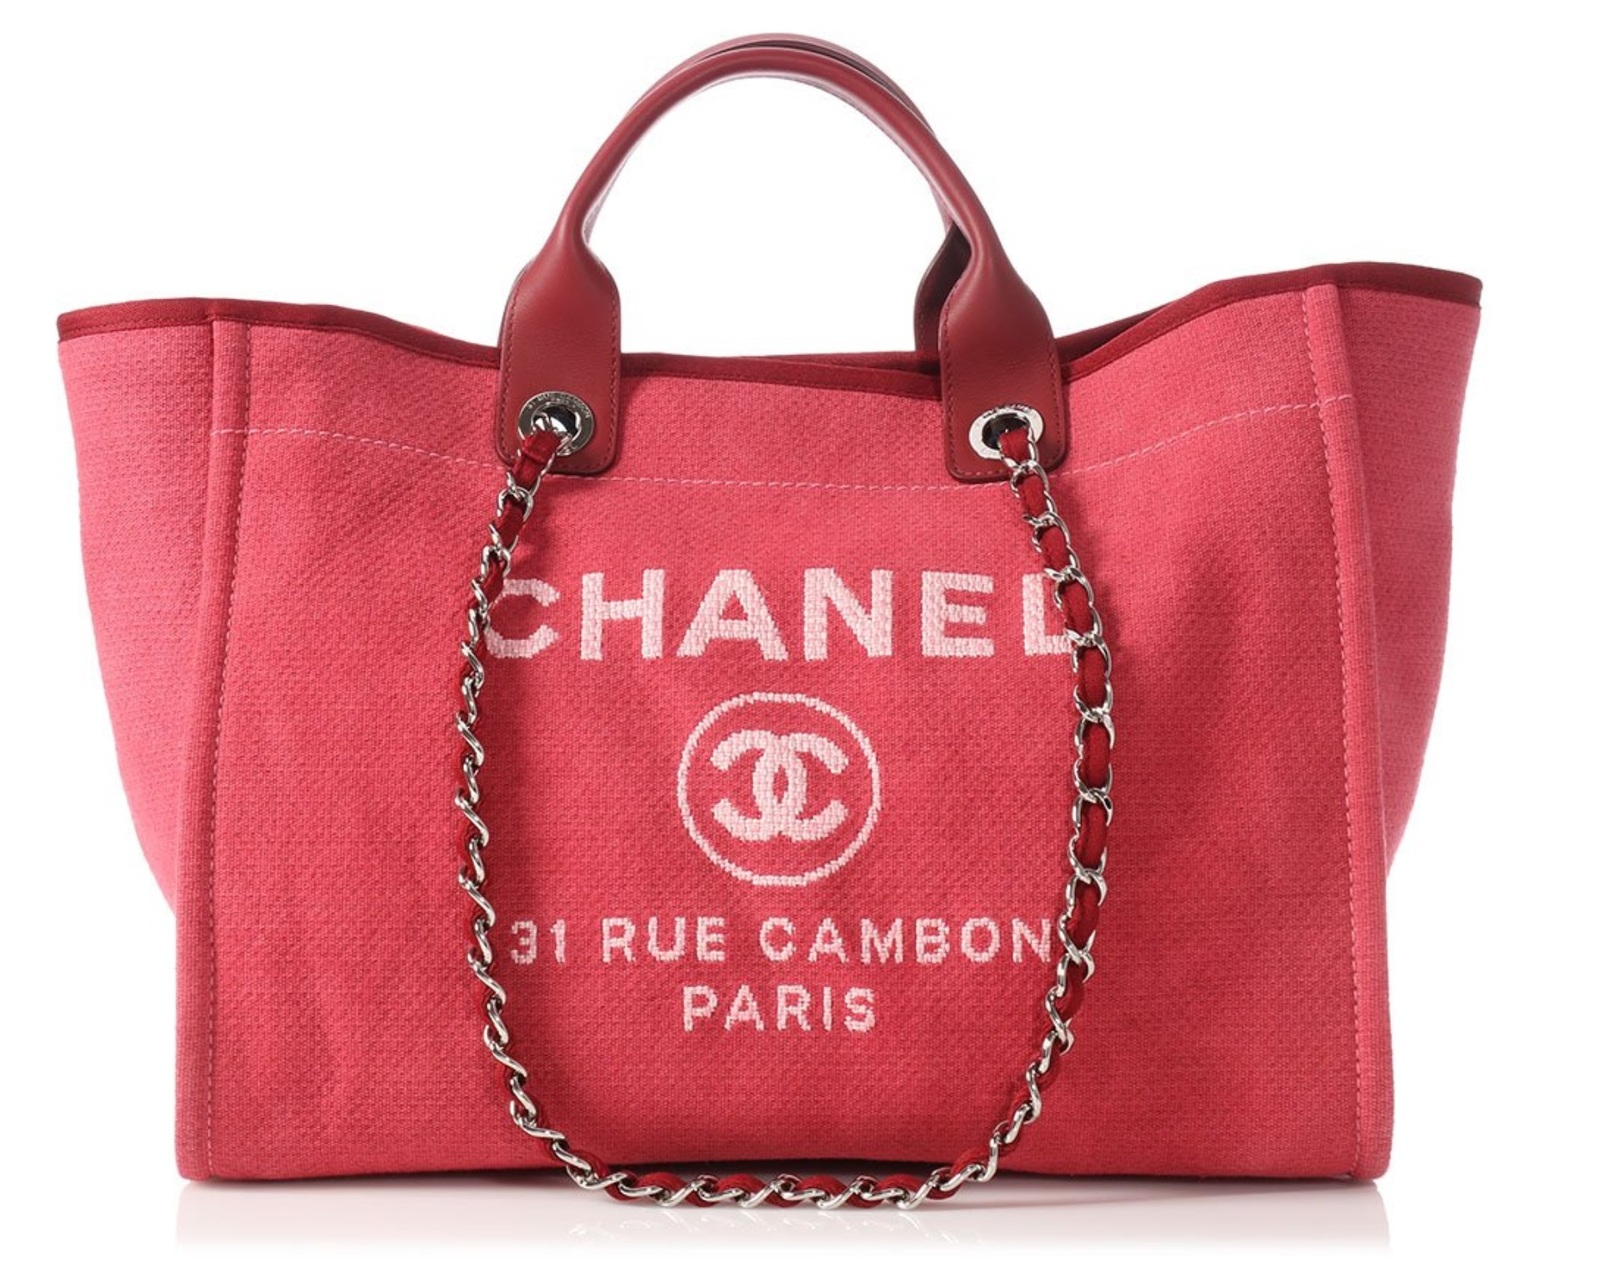 7cb02a4166cc Deau. Deau. Previous. AUTHENTIC CHANEL DARK PINK RED CANVAS LARGE DEAUVILLE 2  WAY TOTE BAG RECEIPT